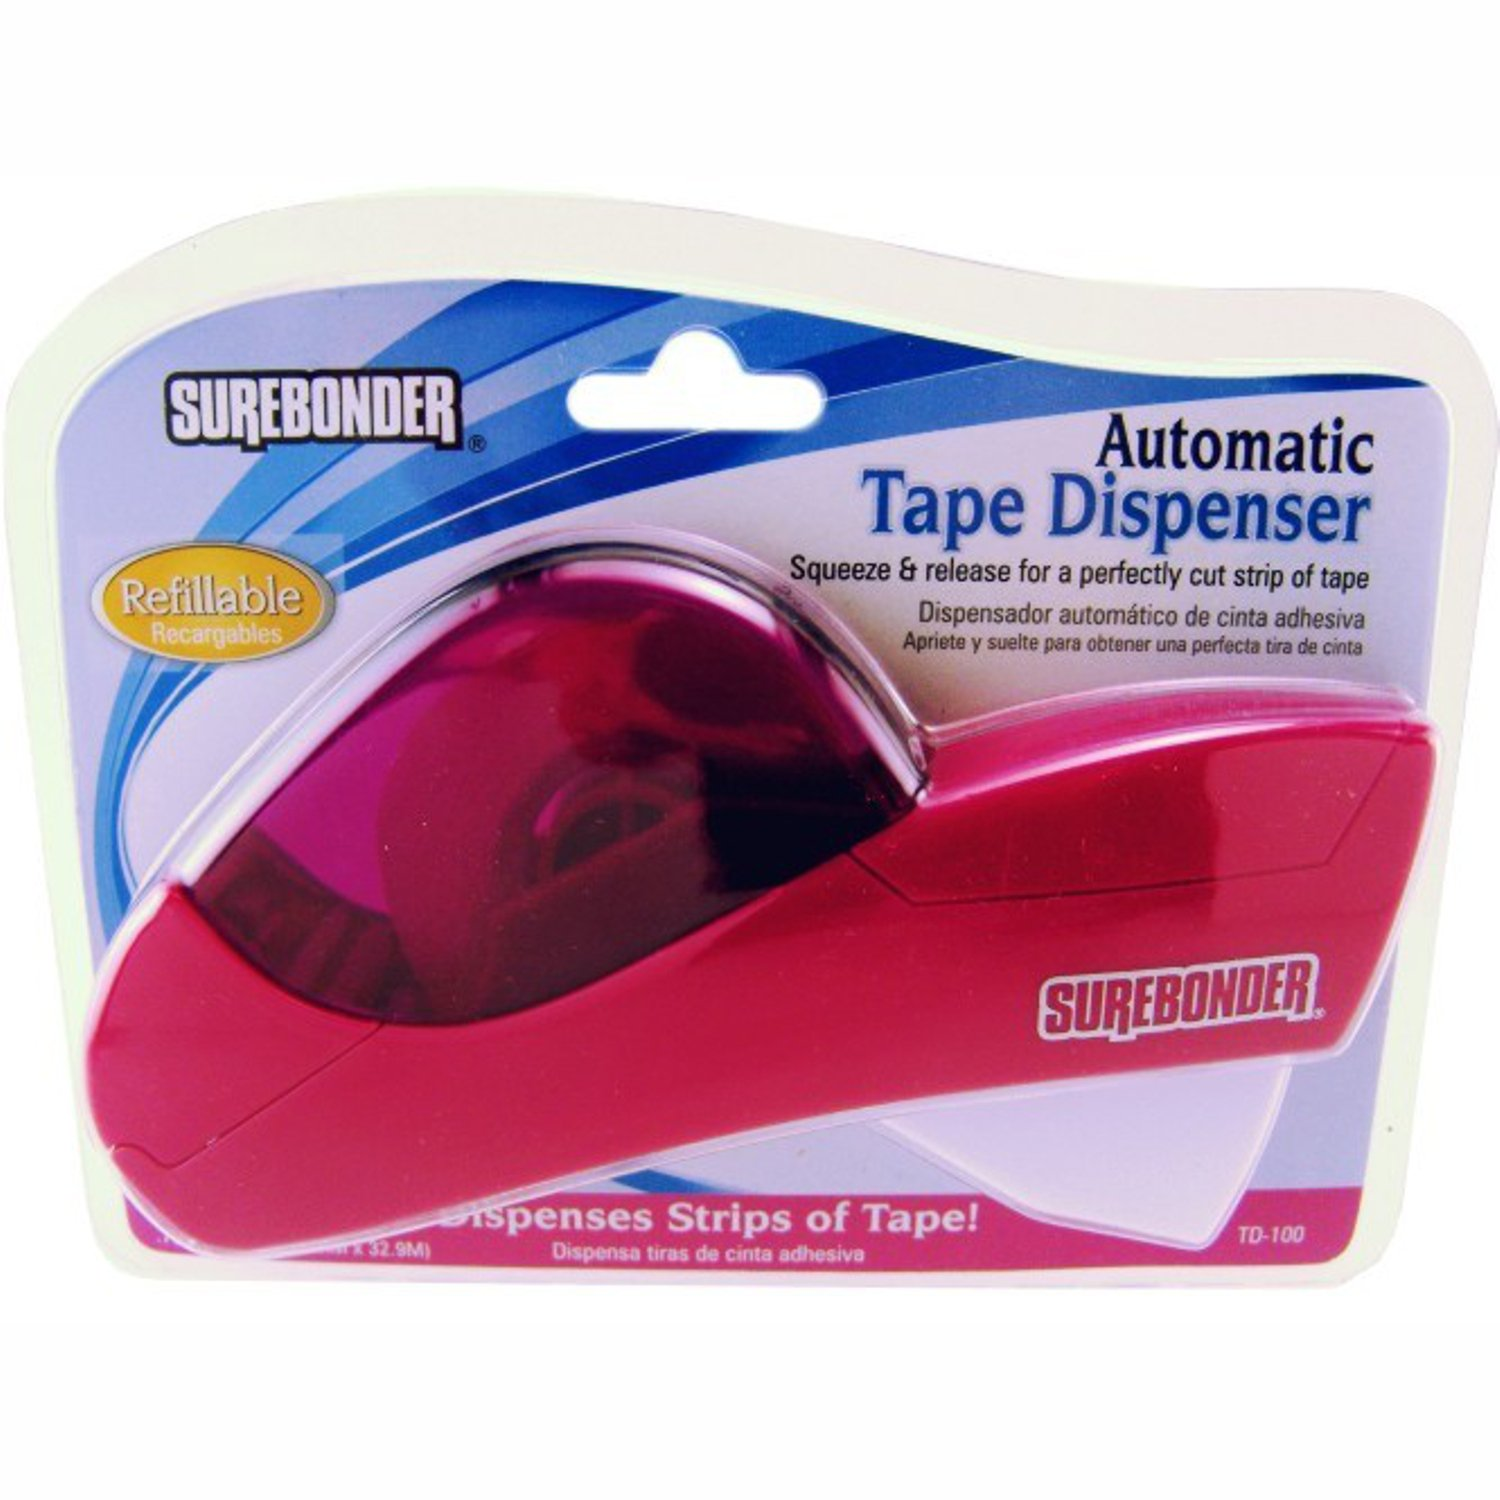 Surebonder TD-100 Automatic Tape Dispensor- Refills Available TD-100R product image